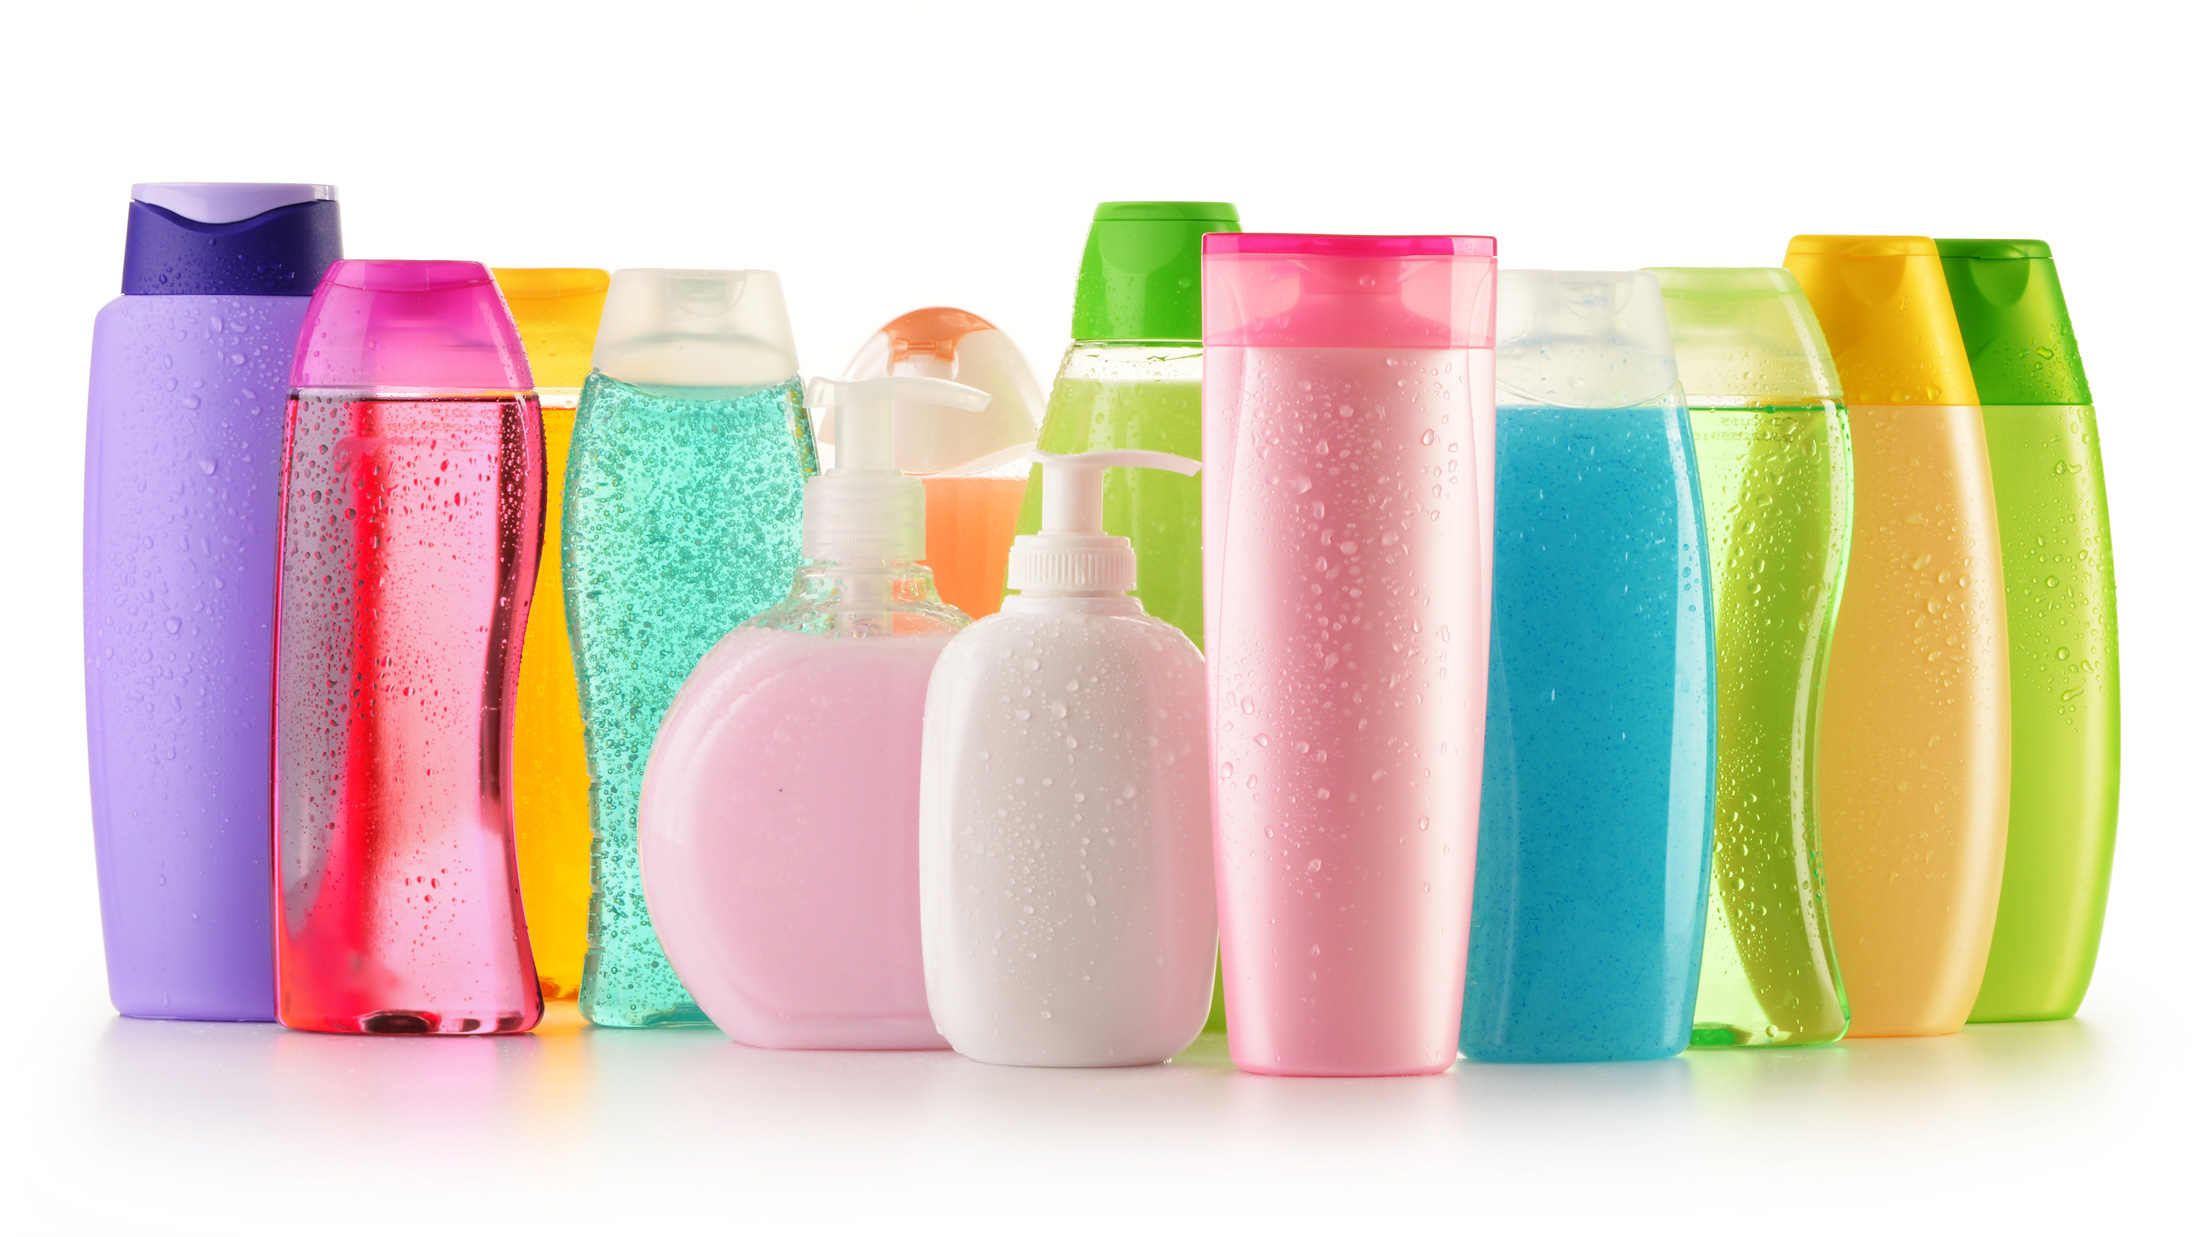 Shampoo And Conditioner Bottles Clip Art Hair care 101 picking the ...